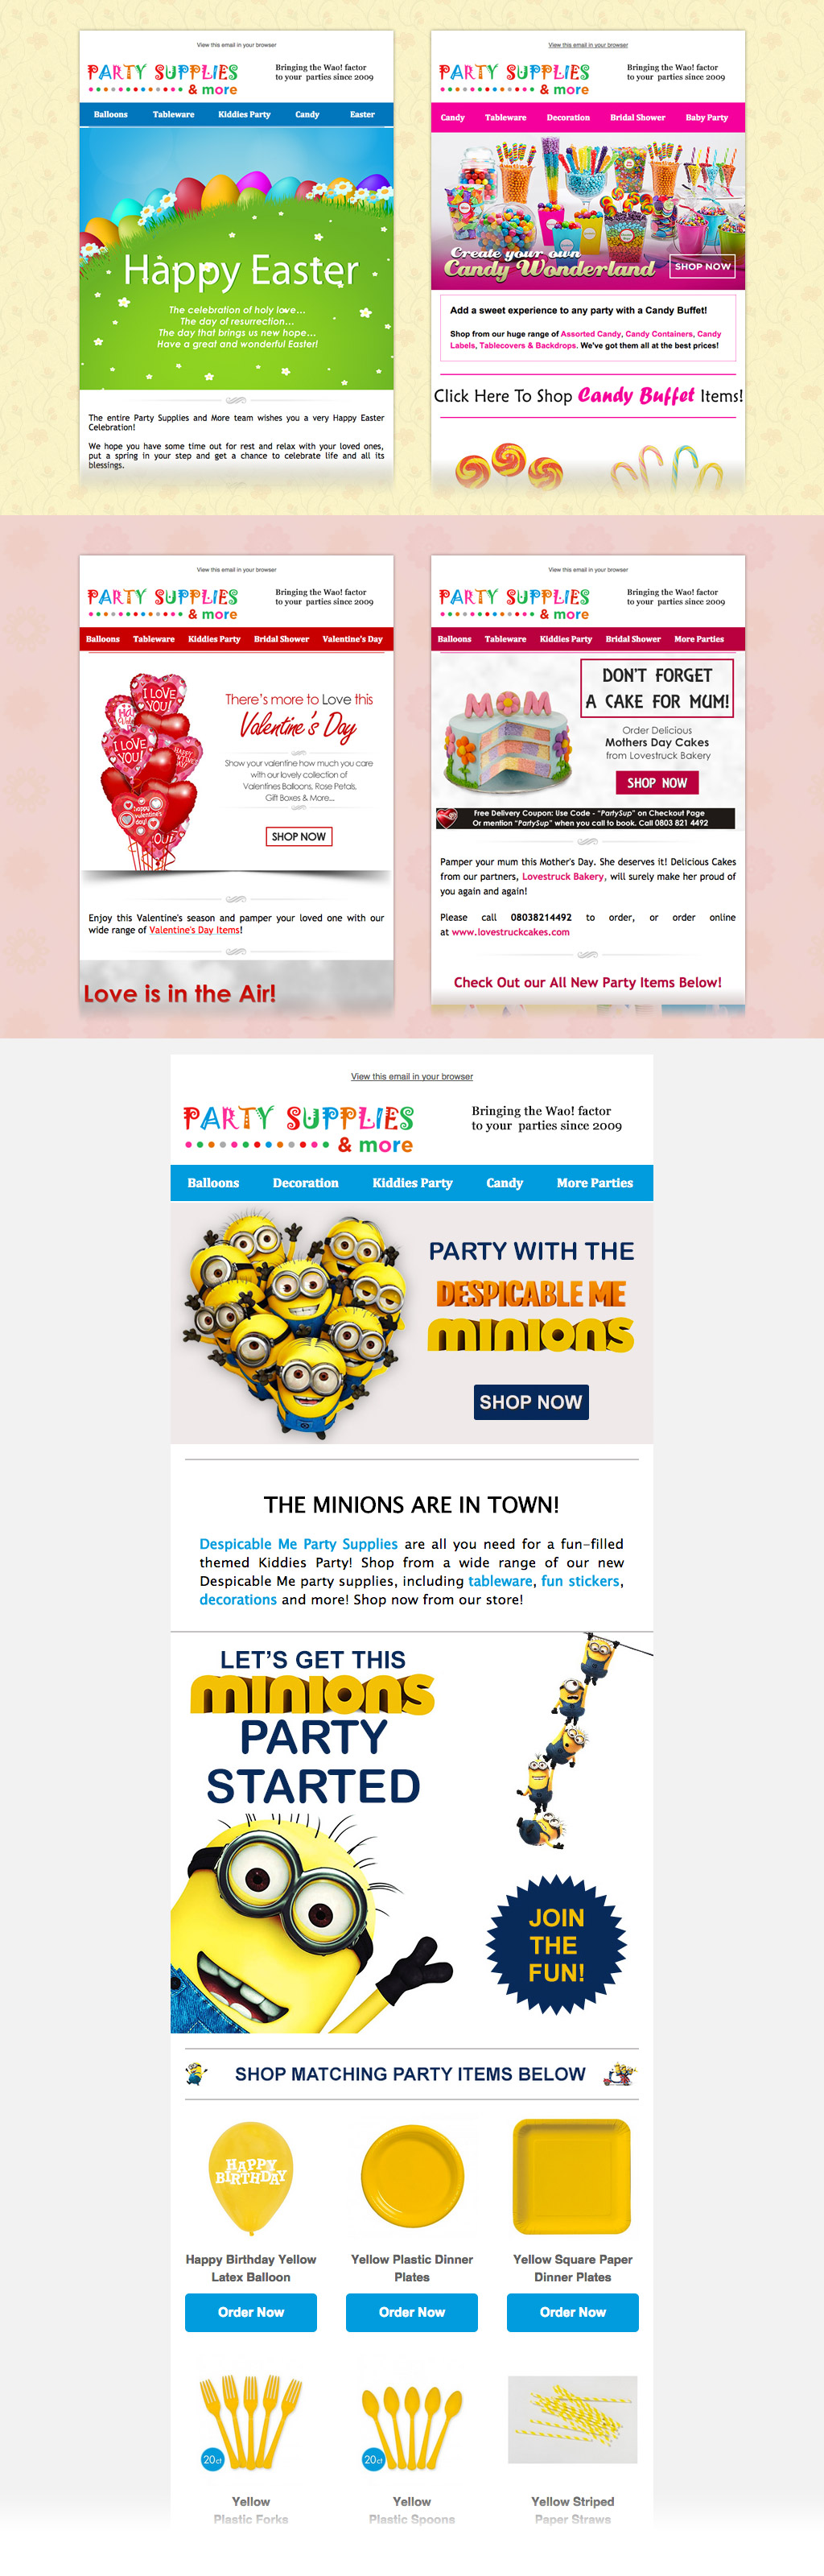 party-supplies-and-more-email-marketing